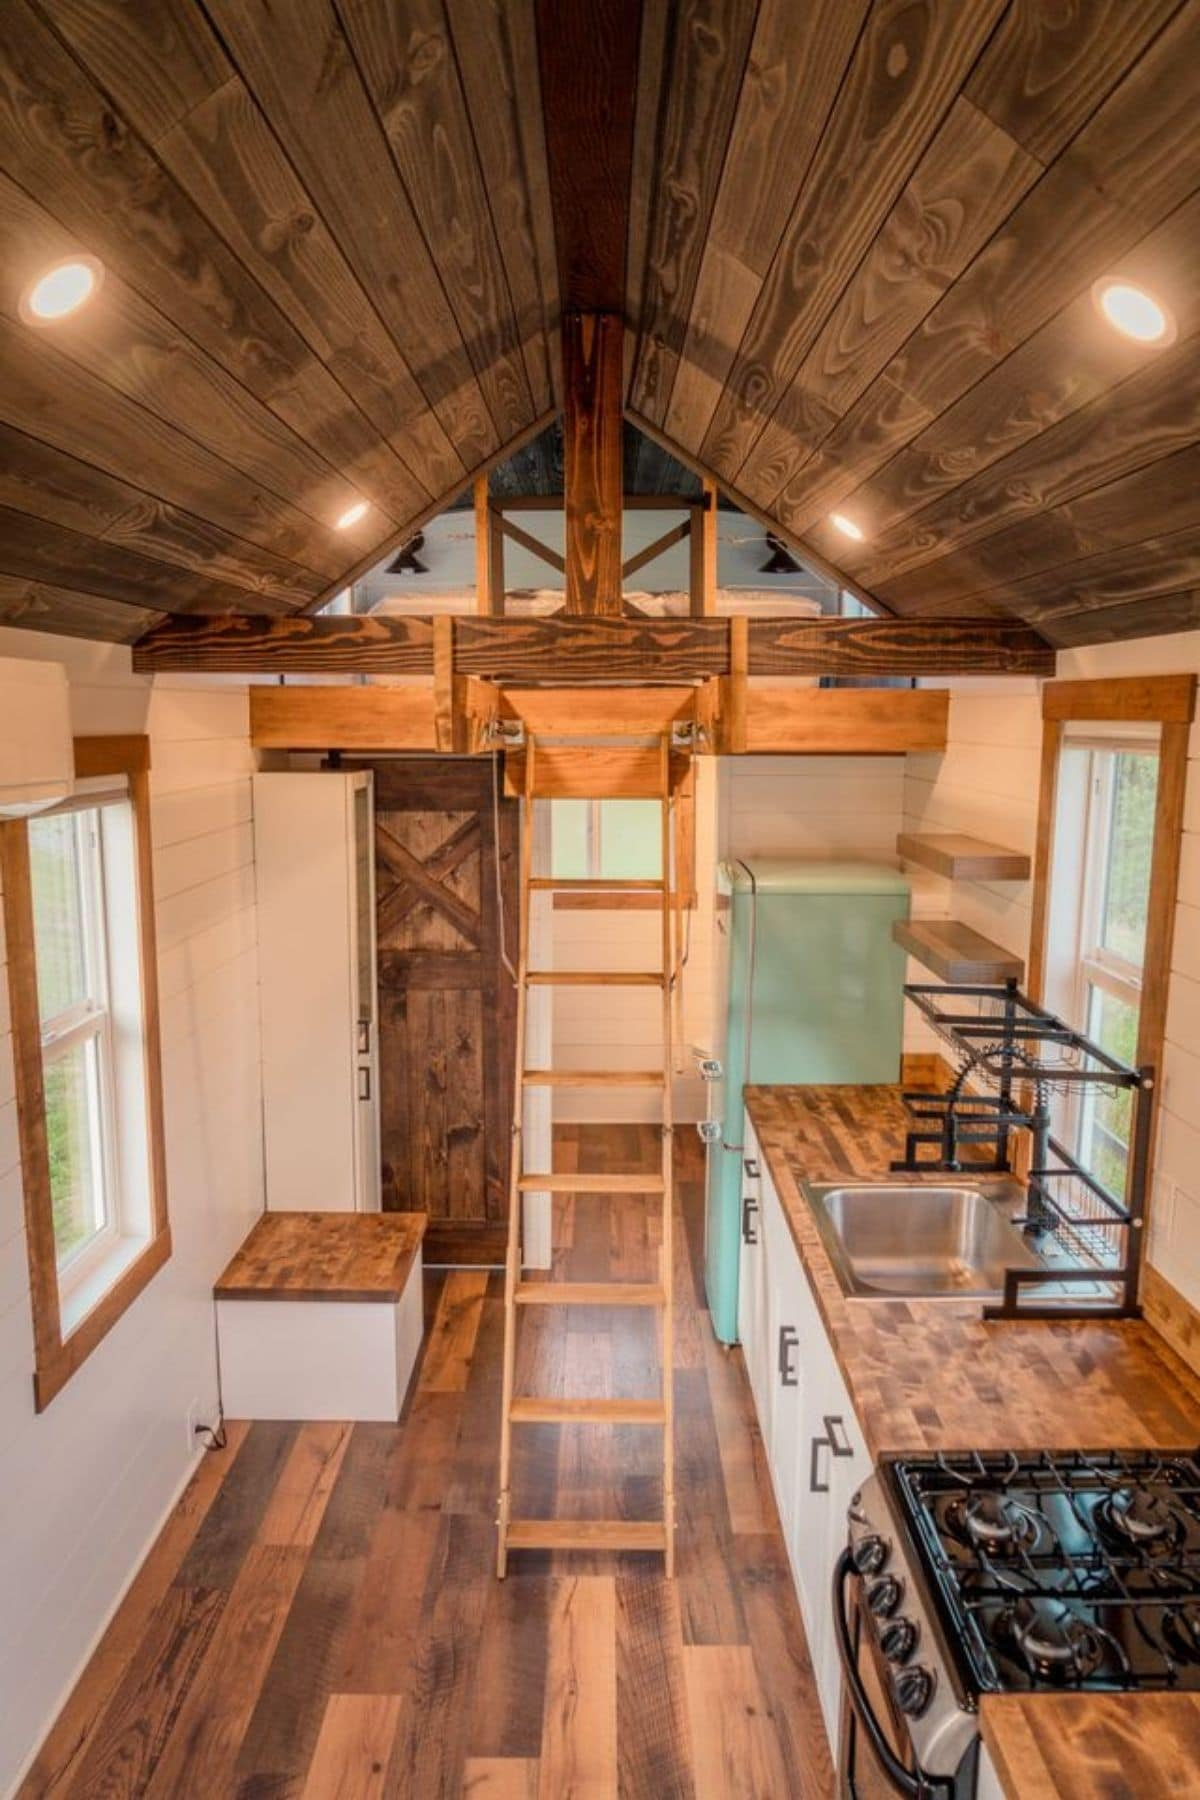 View of interior tiny home with dark wood stained floors and kitchen counter on right